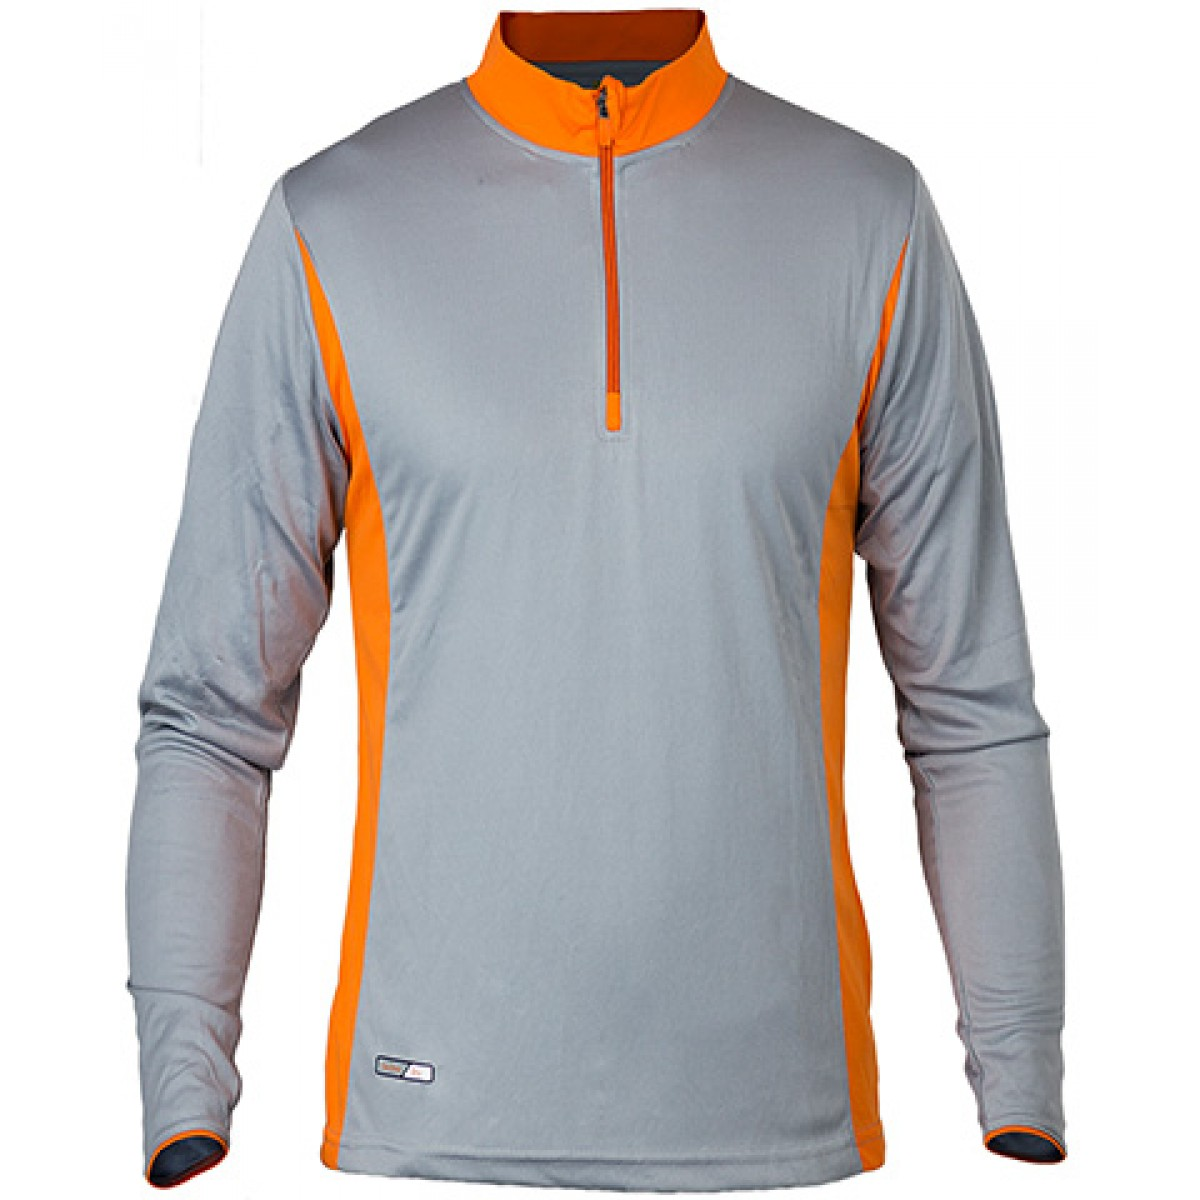 Long Sleeves 3/4 Zip Performance With Side Insert-Neon Orange -L